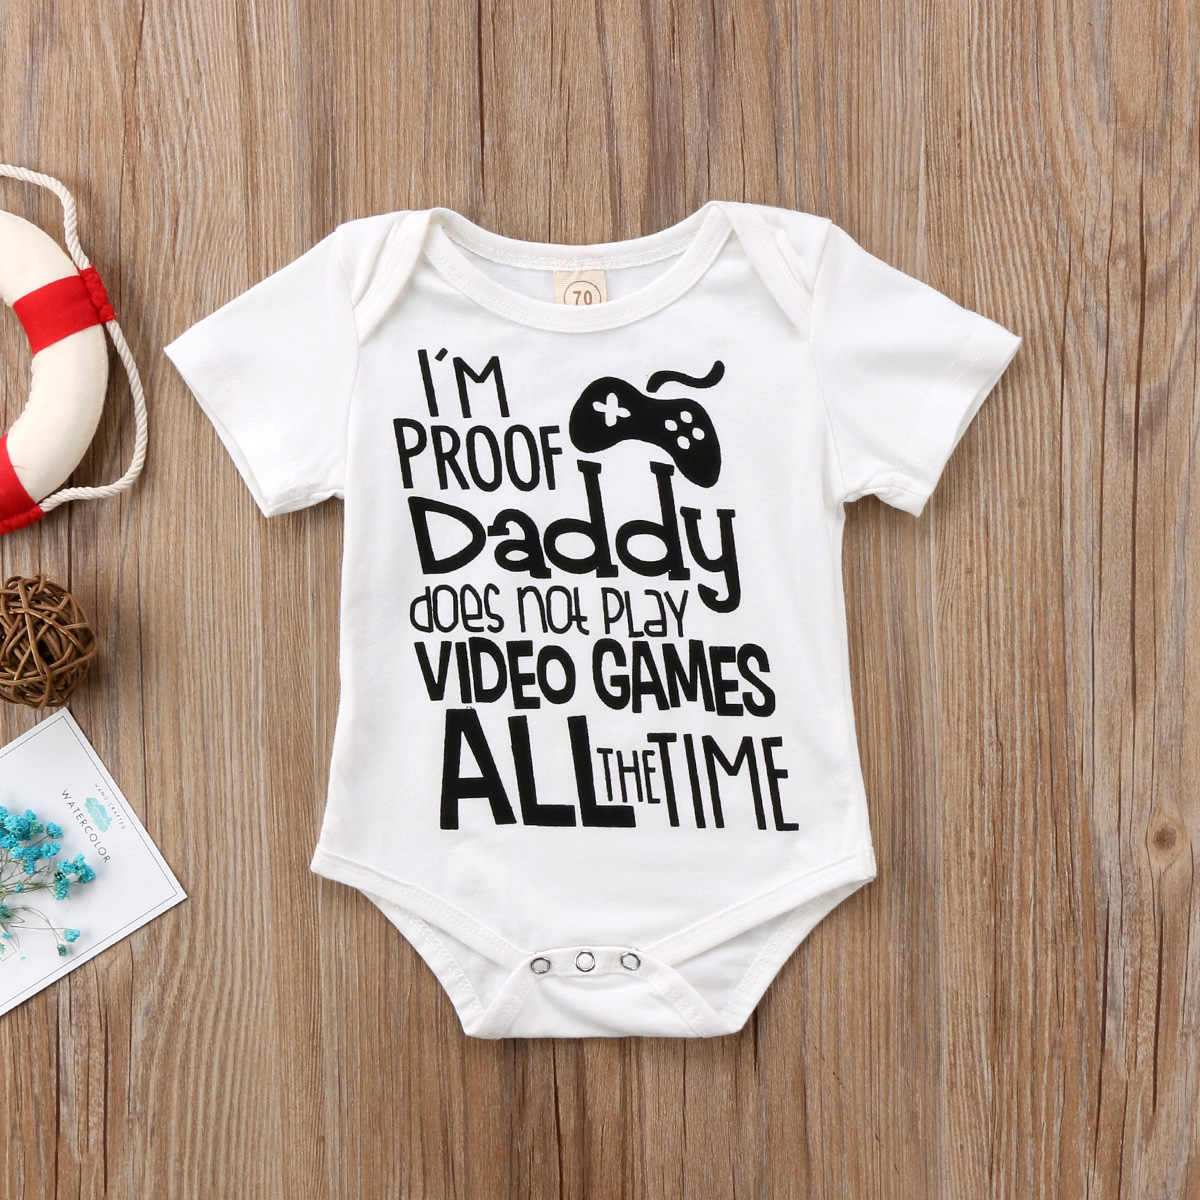 d18e6c2fdbfe 2018 Hot sell Newborn Infant Baby Boy Girls Clothes Short Sleeve Loose Romper  Jumpsuit Clothes Outfits